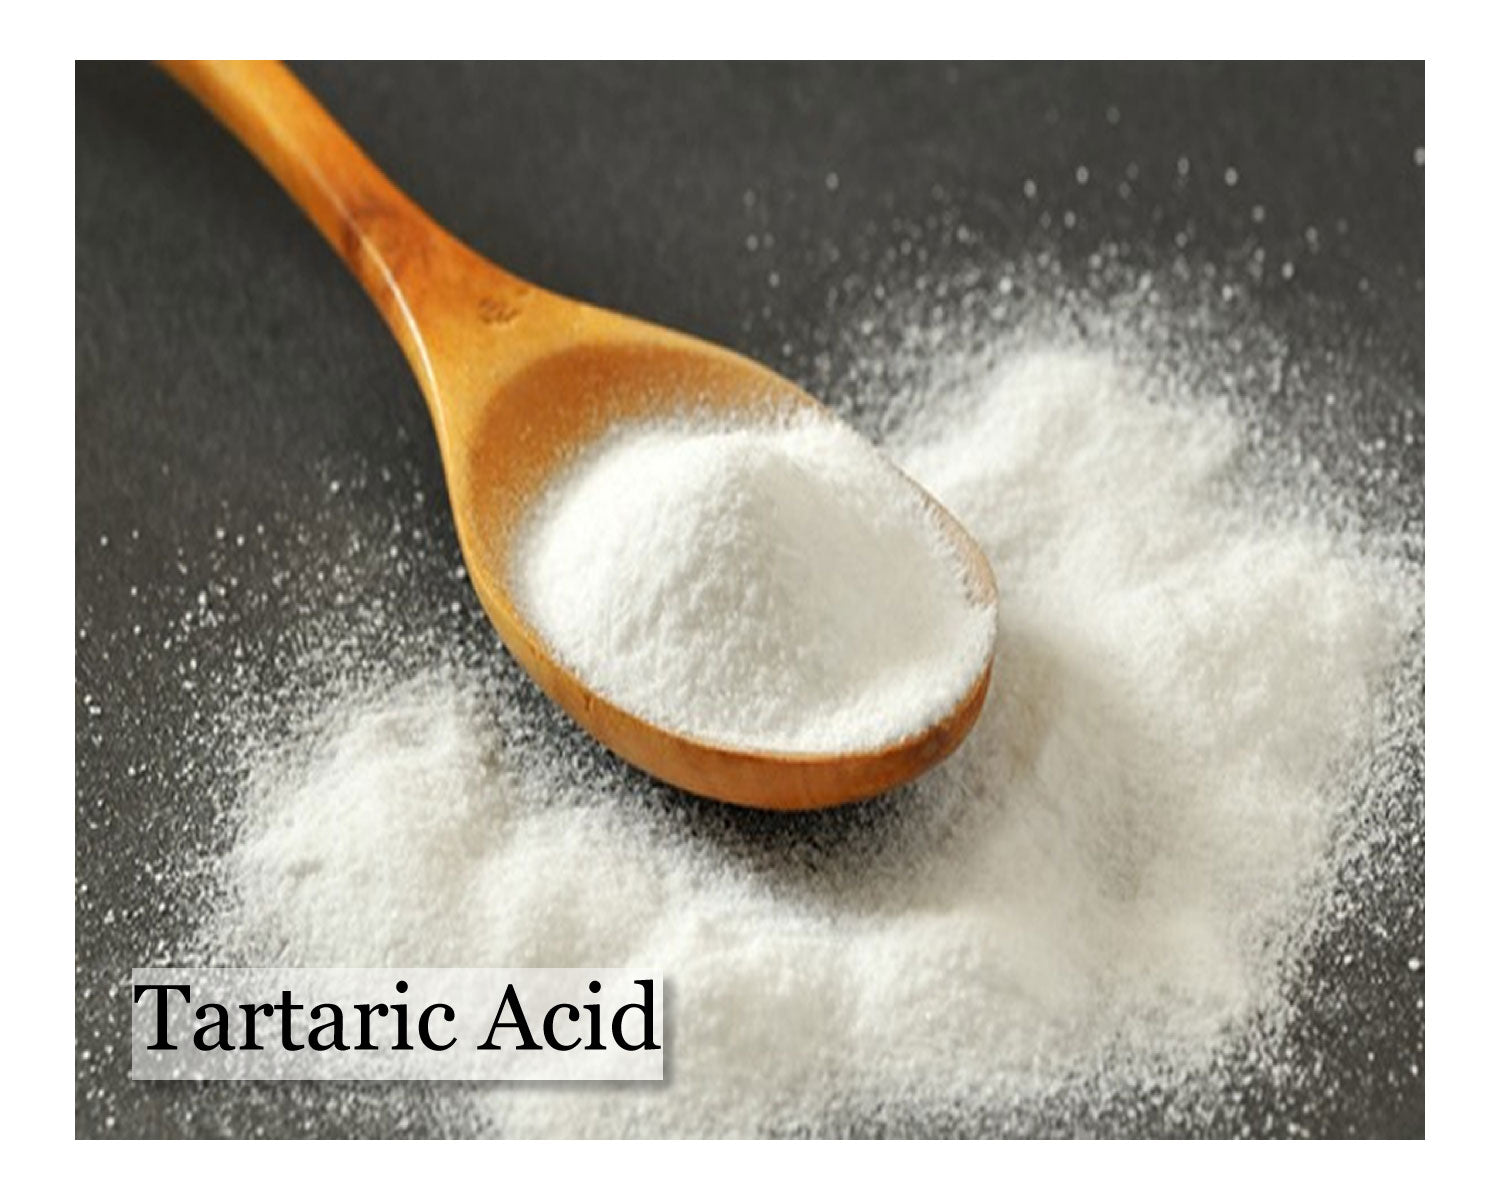 Tartaric Acid - 2 oz